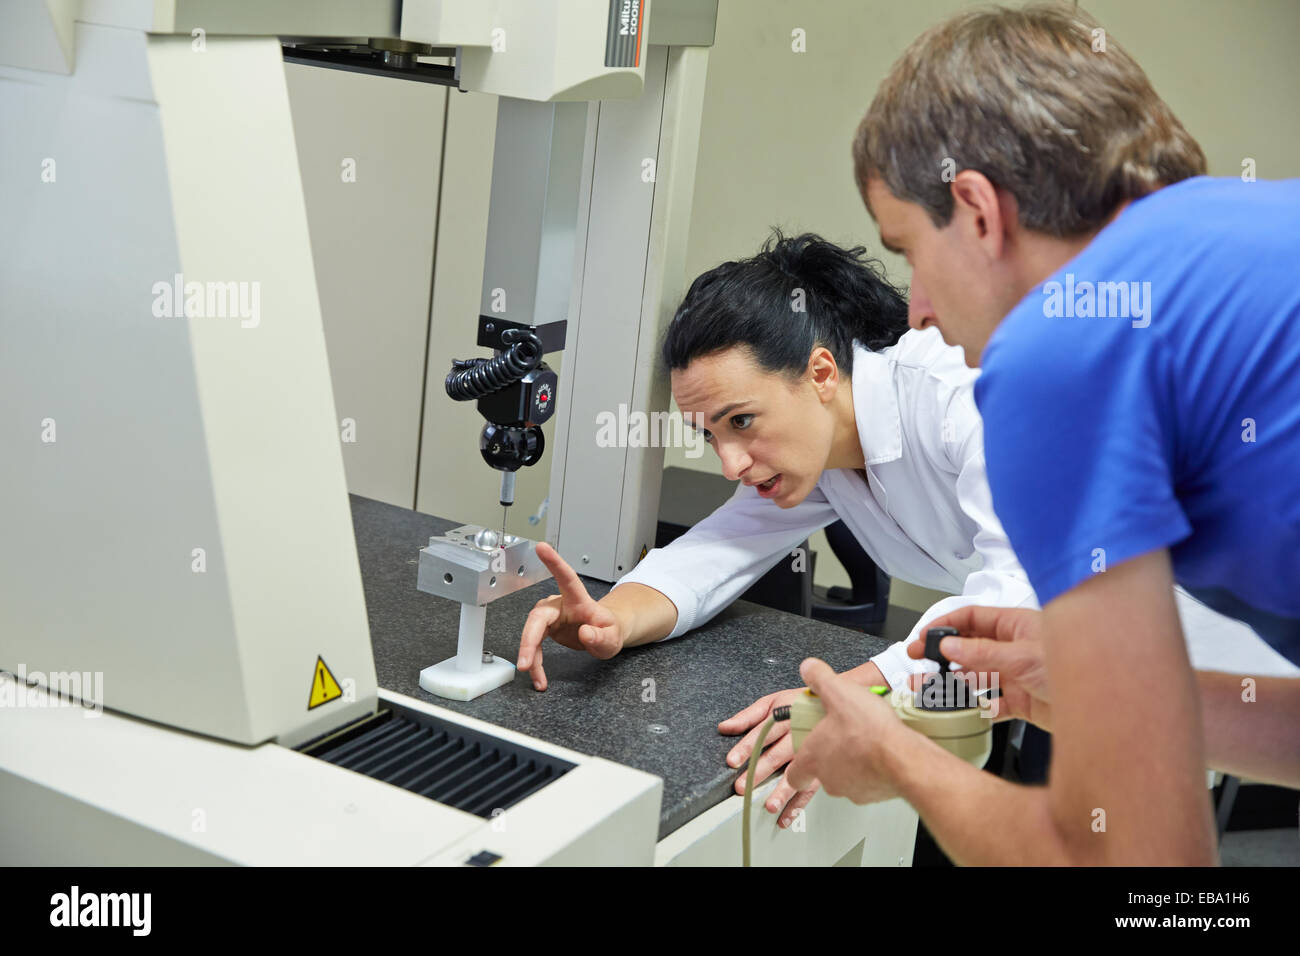 Training room. Student learning measured in three-dimensional machine. Coordinate Measuring Machine. Innovative - Stock Image